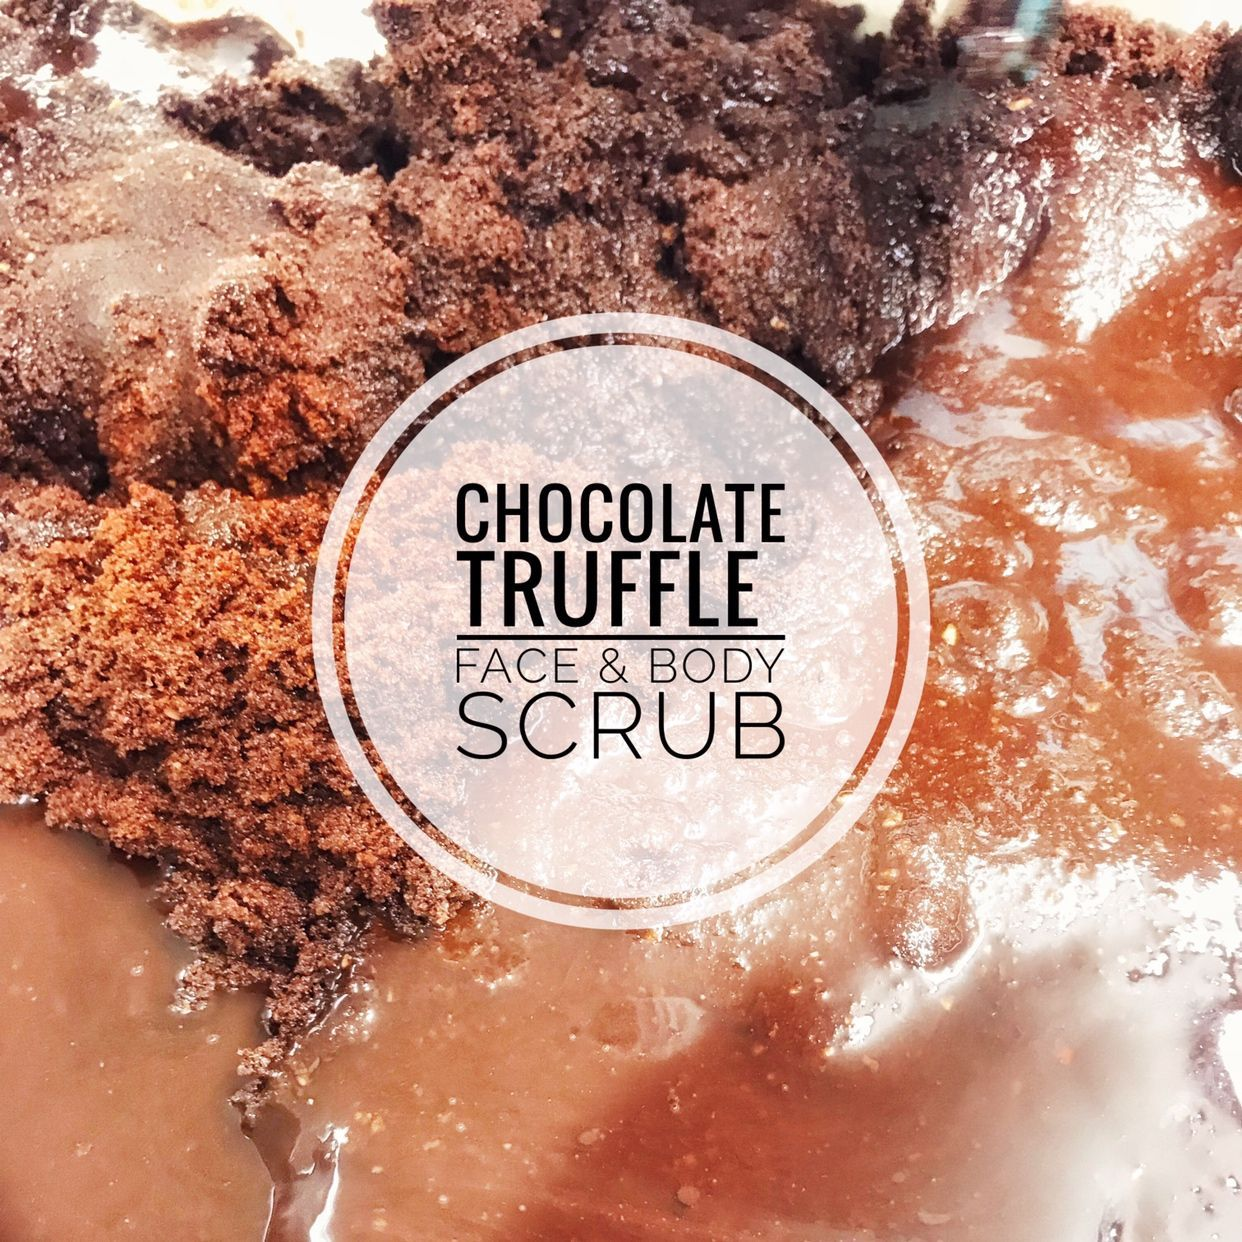 Our Chocolate Truffle Face & Scrub is back! Handmade with real cacao powder that contains more anti-oxidants then white and green tea combined. Perfect for a rejuvenating glow, and rich chocolate aroma!    #chocolatetruffle #chocolate #truffle #scrub #bodyscrub #facescrub #mojospa #getyourmojoon #feelgoodbeautyco #chicago #chicagobeauty #naturalbeauty #cleanbeauty #SaltBodyScrub